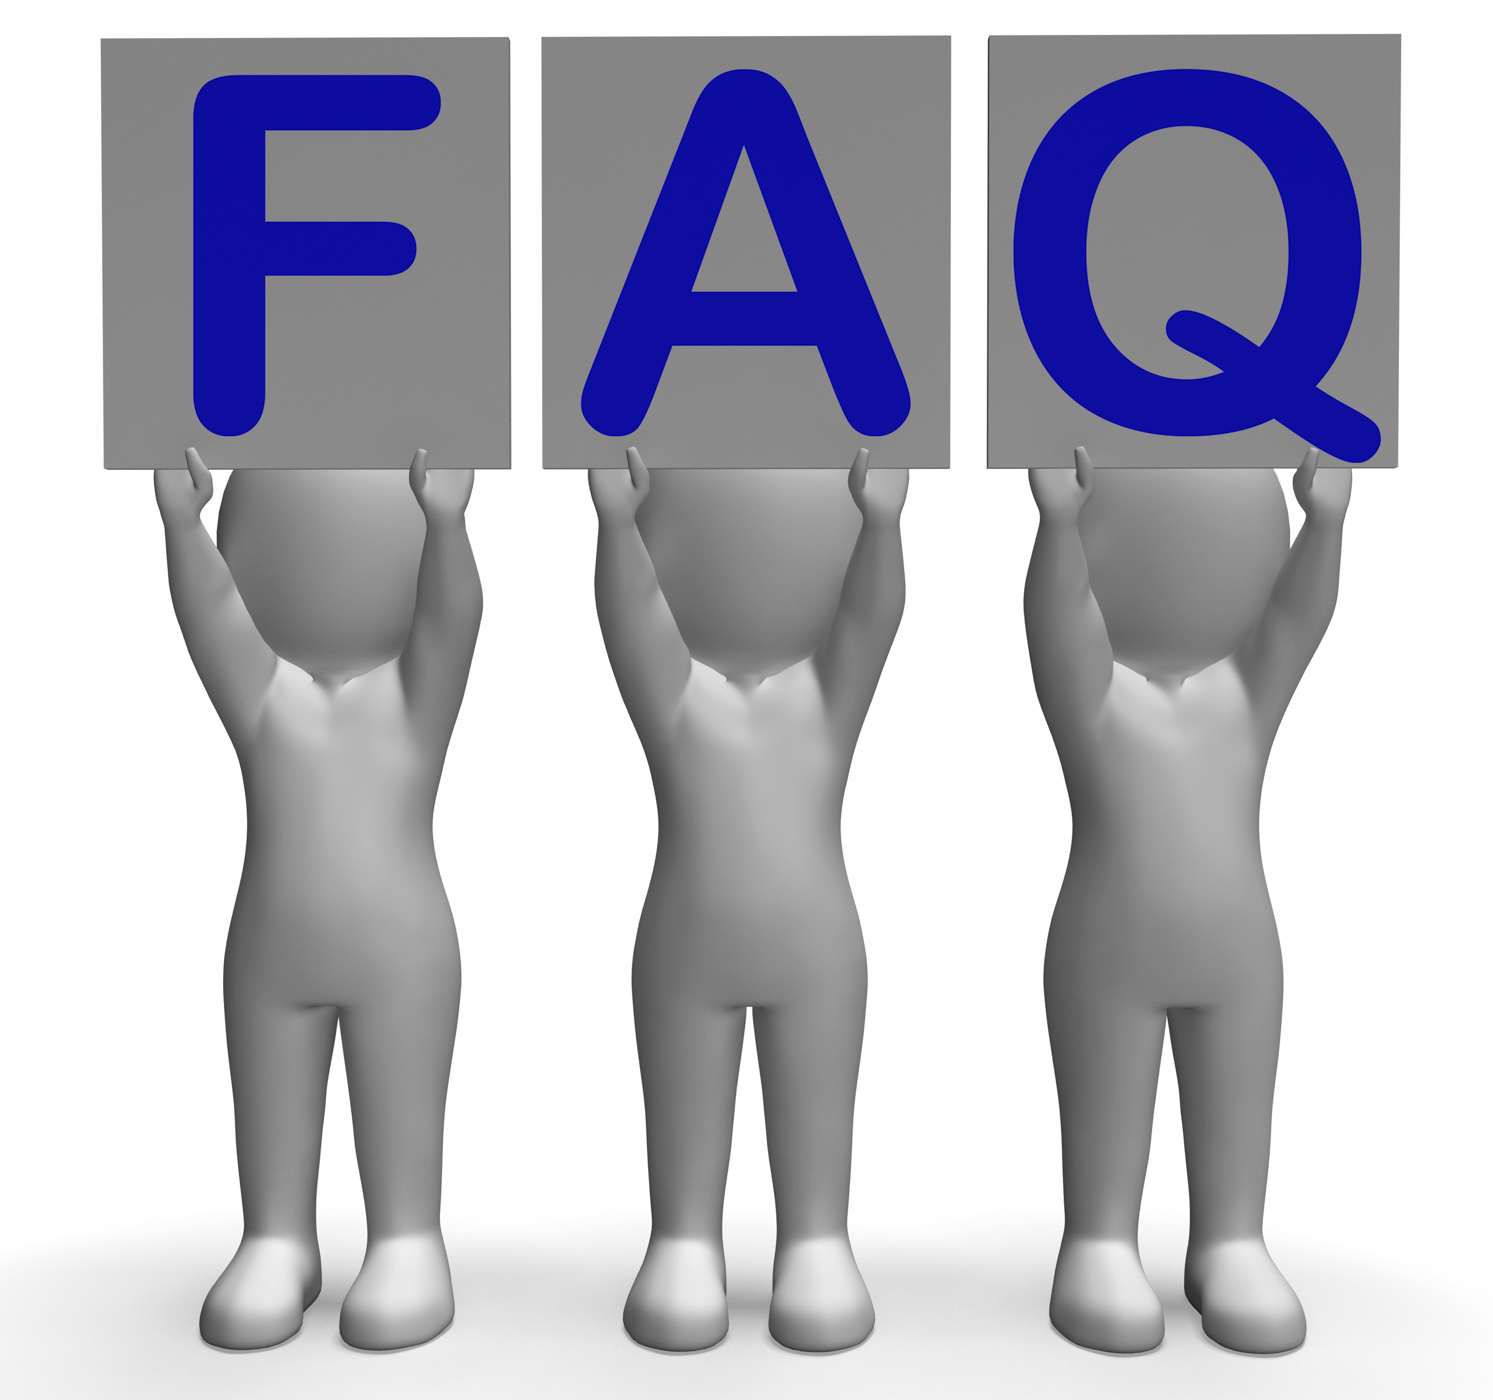 FAQ Banners Shows Frequent Assistance And Support, 3dcharacter, Information, Solution, Questions, HQ Photo